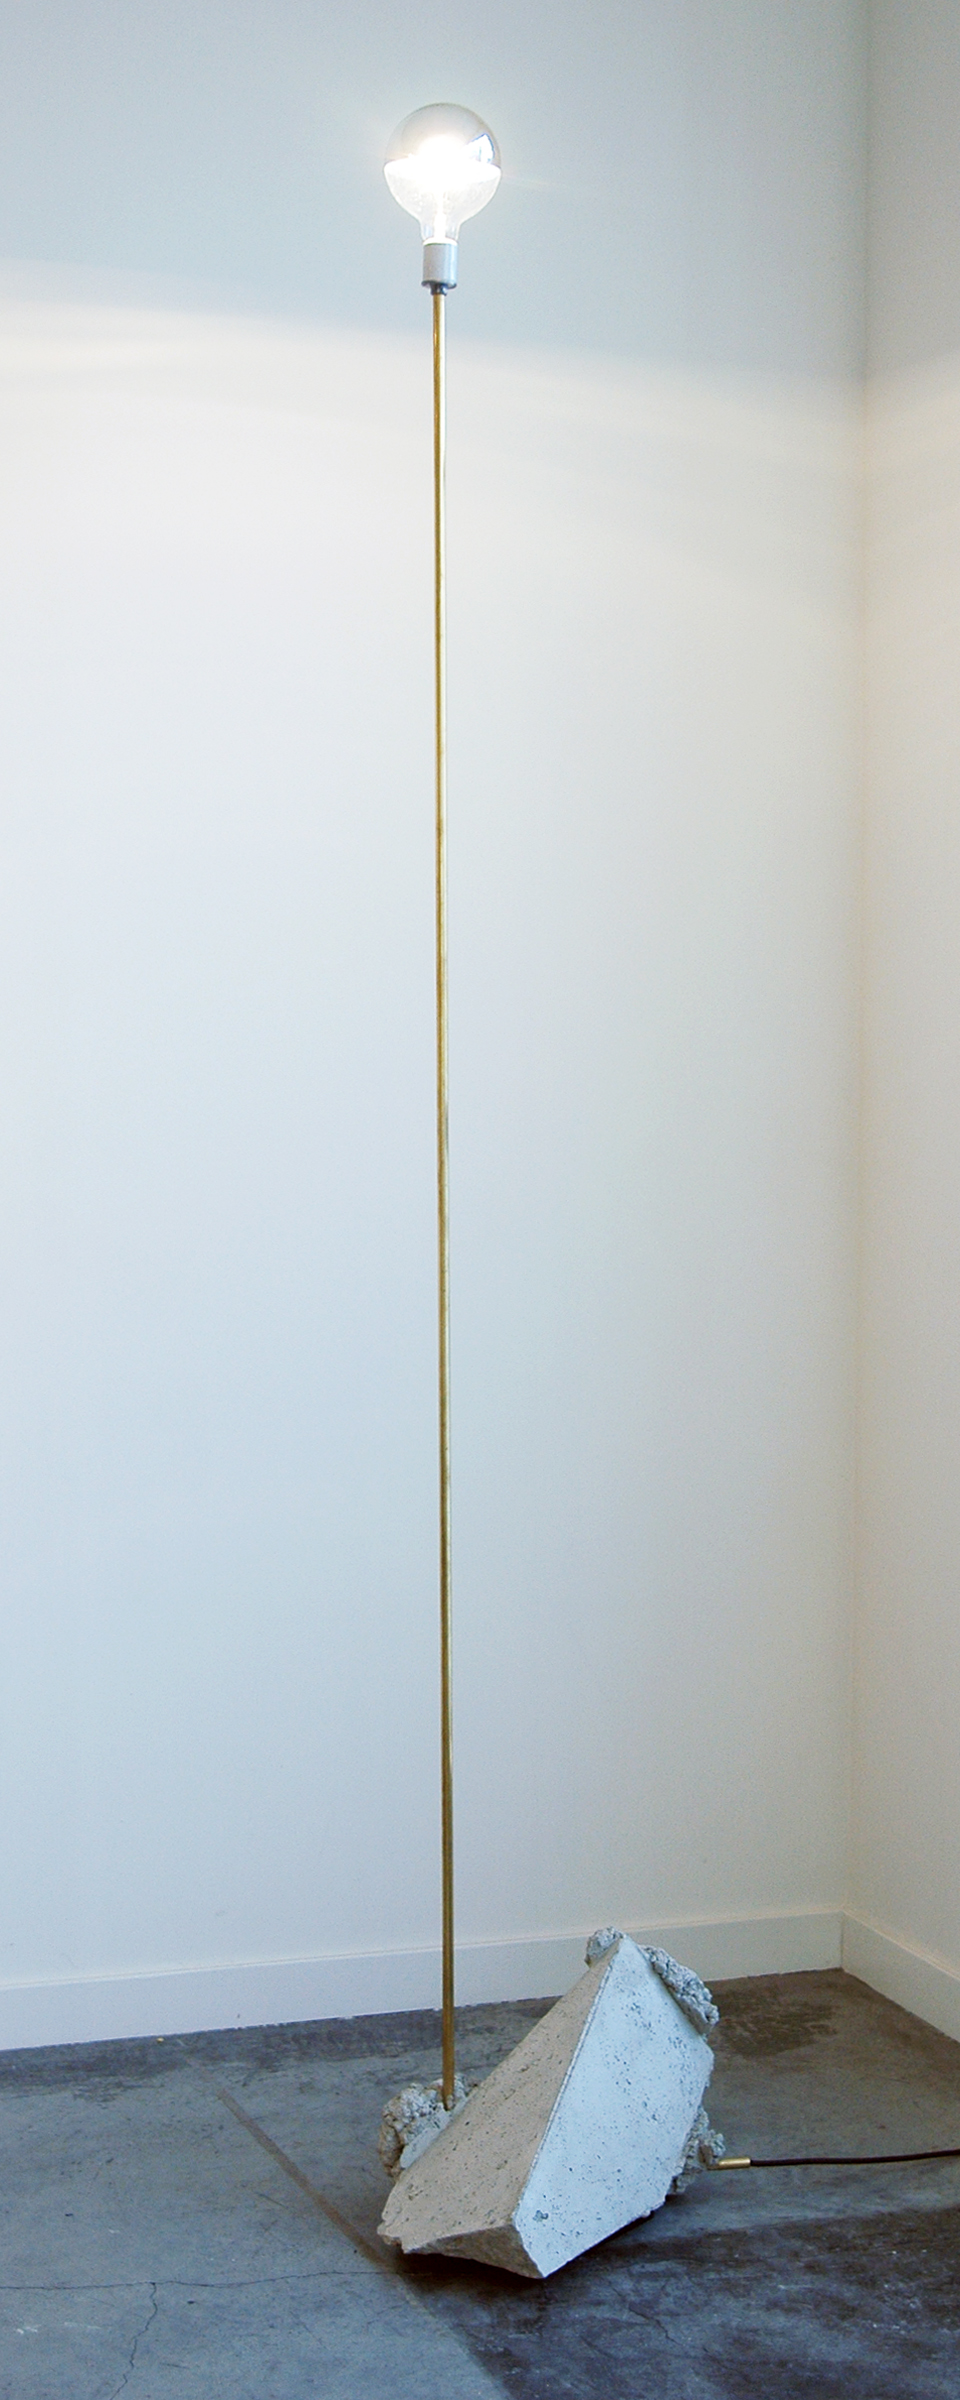 "JONATHAN RUNCIO   Cast-off lamp 02 , brass, concrete, wiring, half crome light bulb, 90"" x 18.5"" x 11"", 2013"